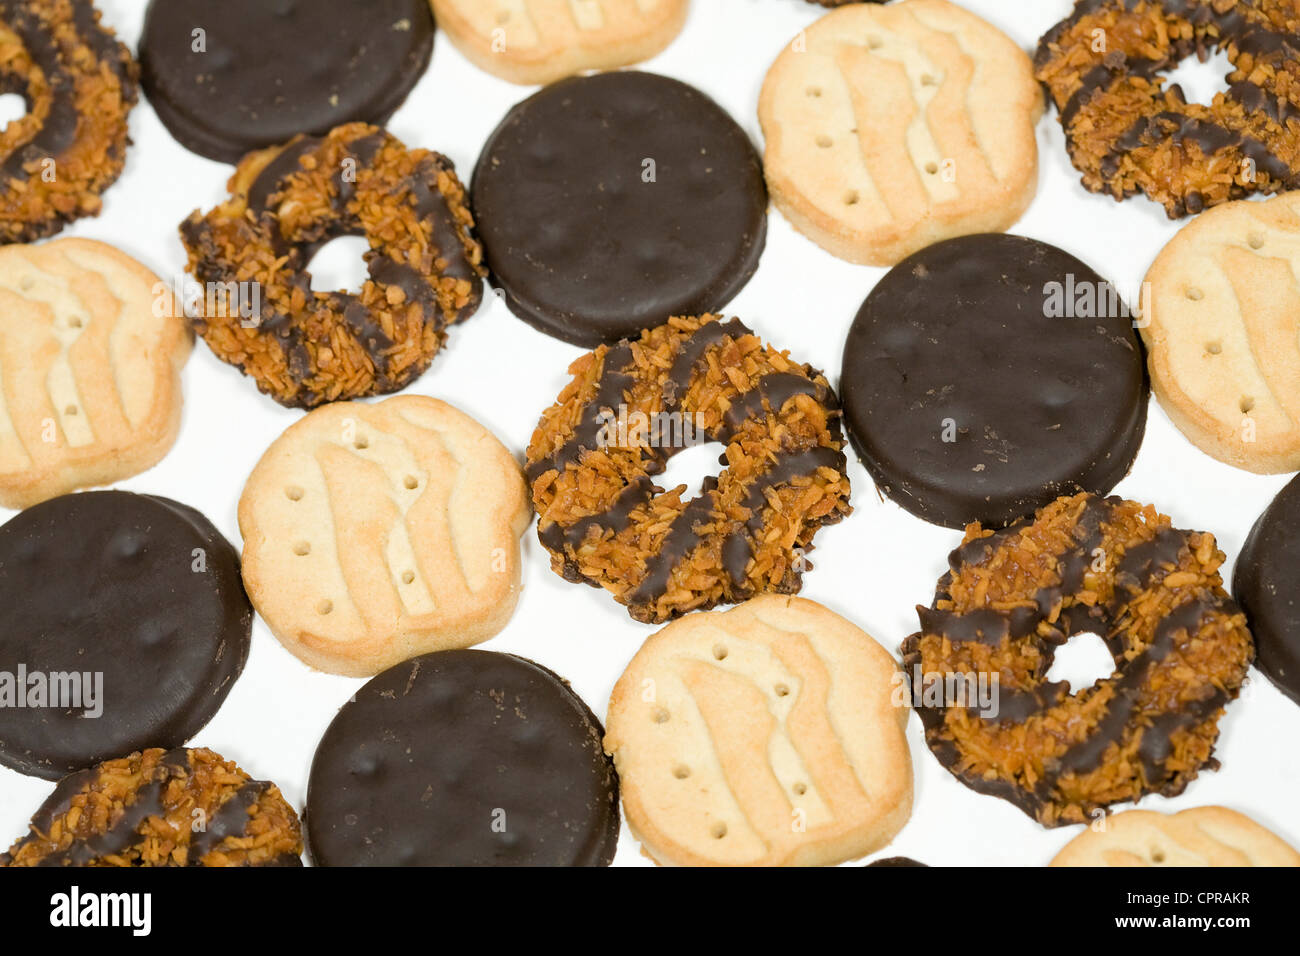 Thin Mints, Trefoils and Samoas Girl Scout cookies.  - Stock Image